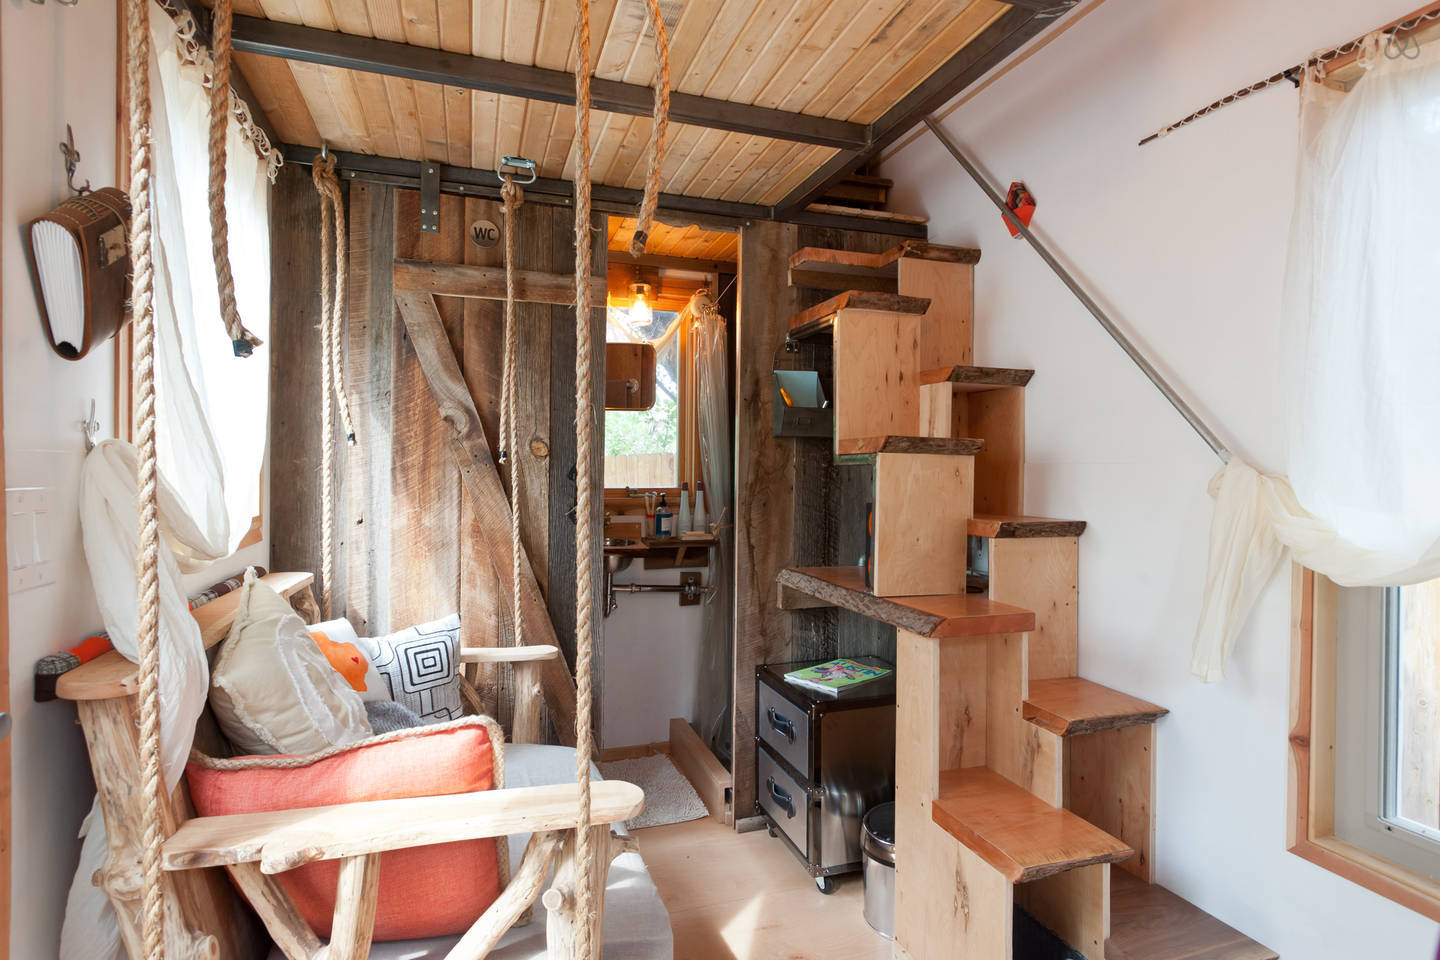 images via tiny house living hip east side tiny pad interior - Tiny Dwellings